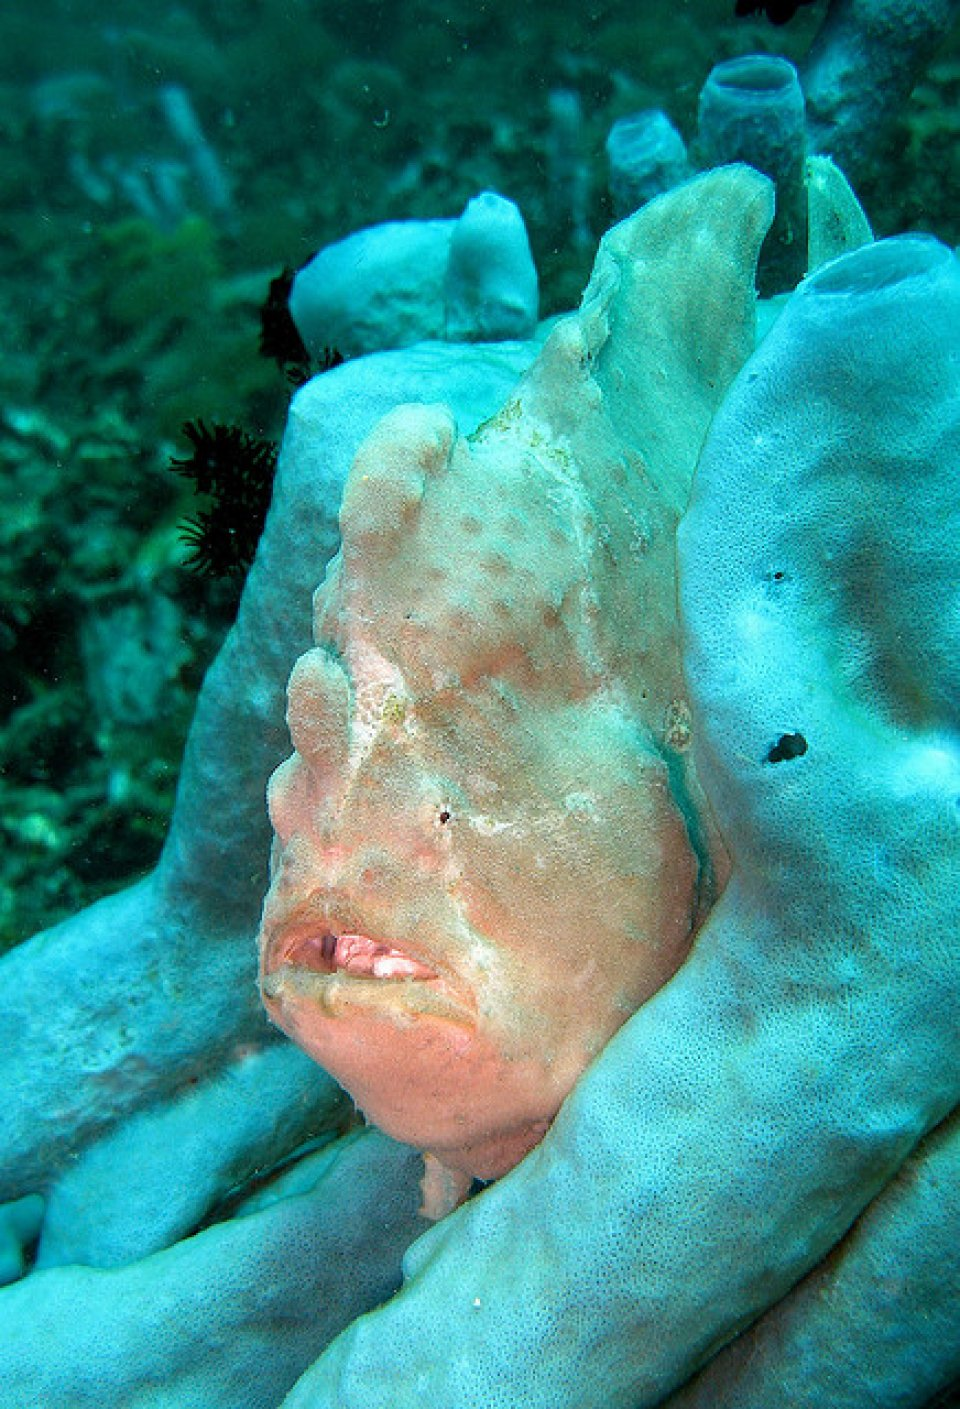 frog fish in between sponges